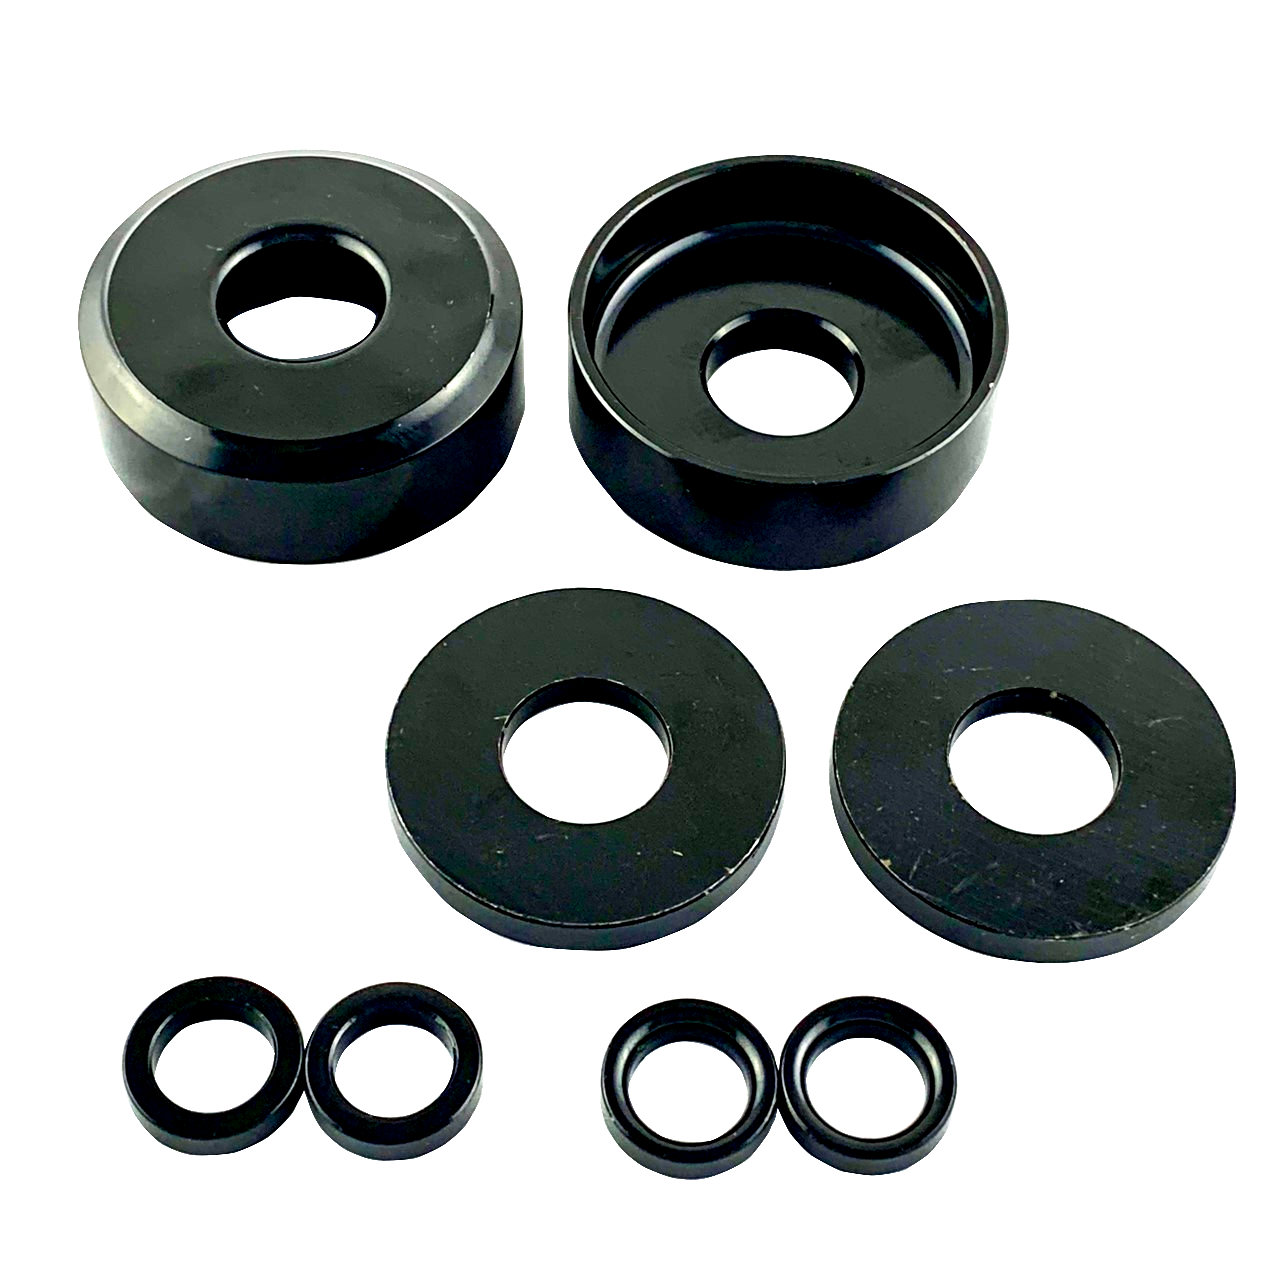 Radius Arm Spacer Washer